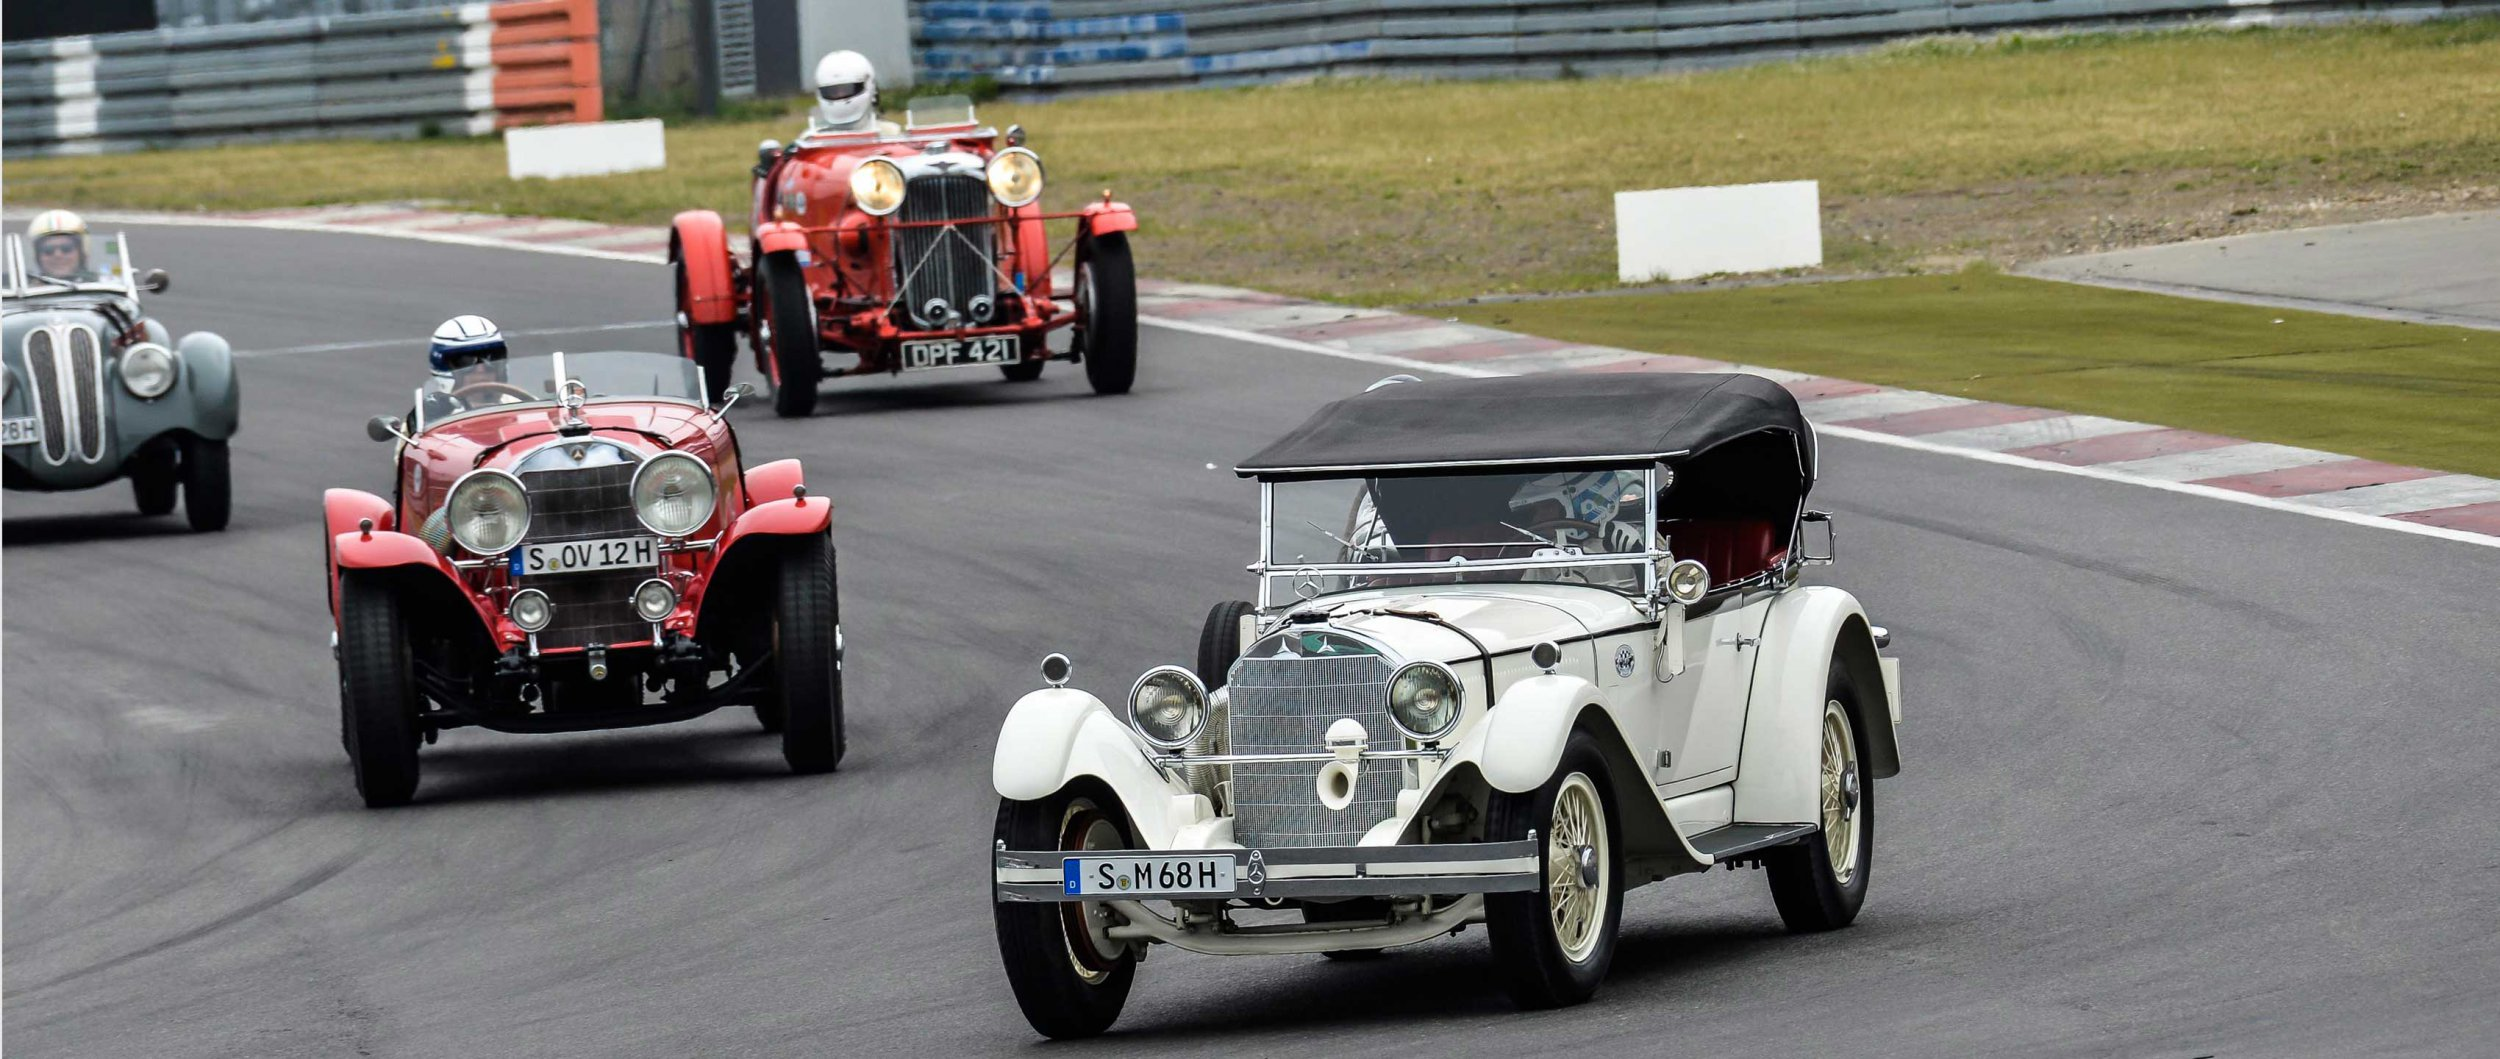 /files/HQ-Events/Classic/Oldtimer%20Events/mbcom_nuerburgring17_review_1_3400x1440.jpg